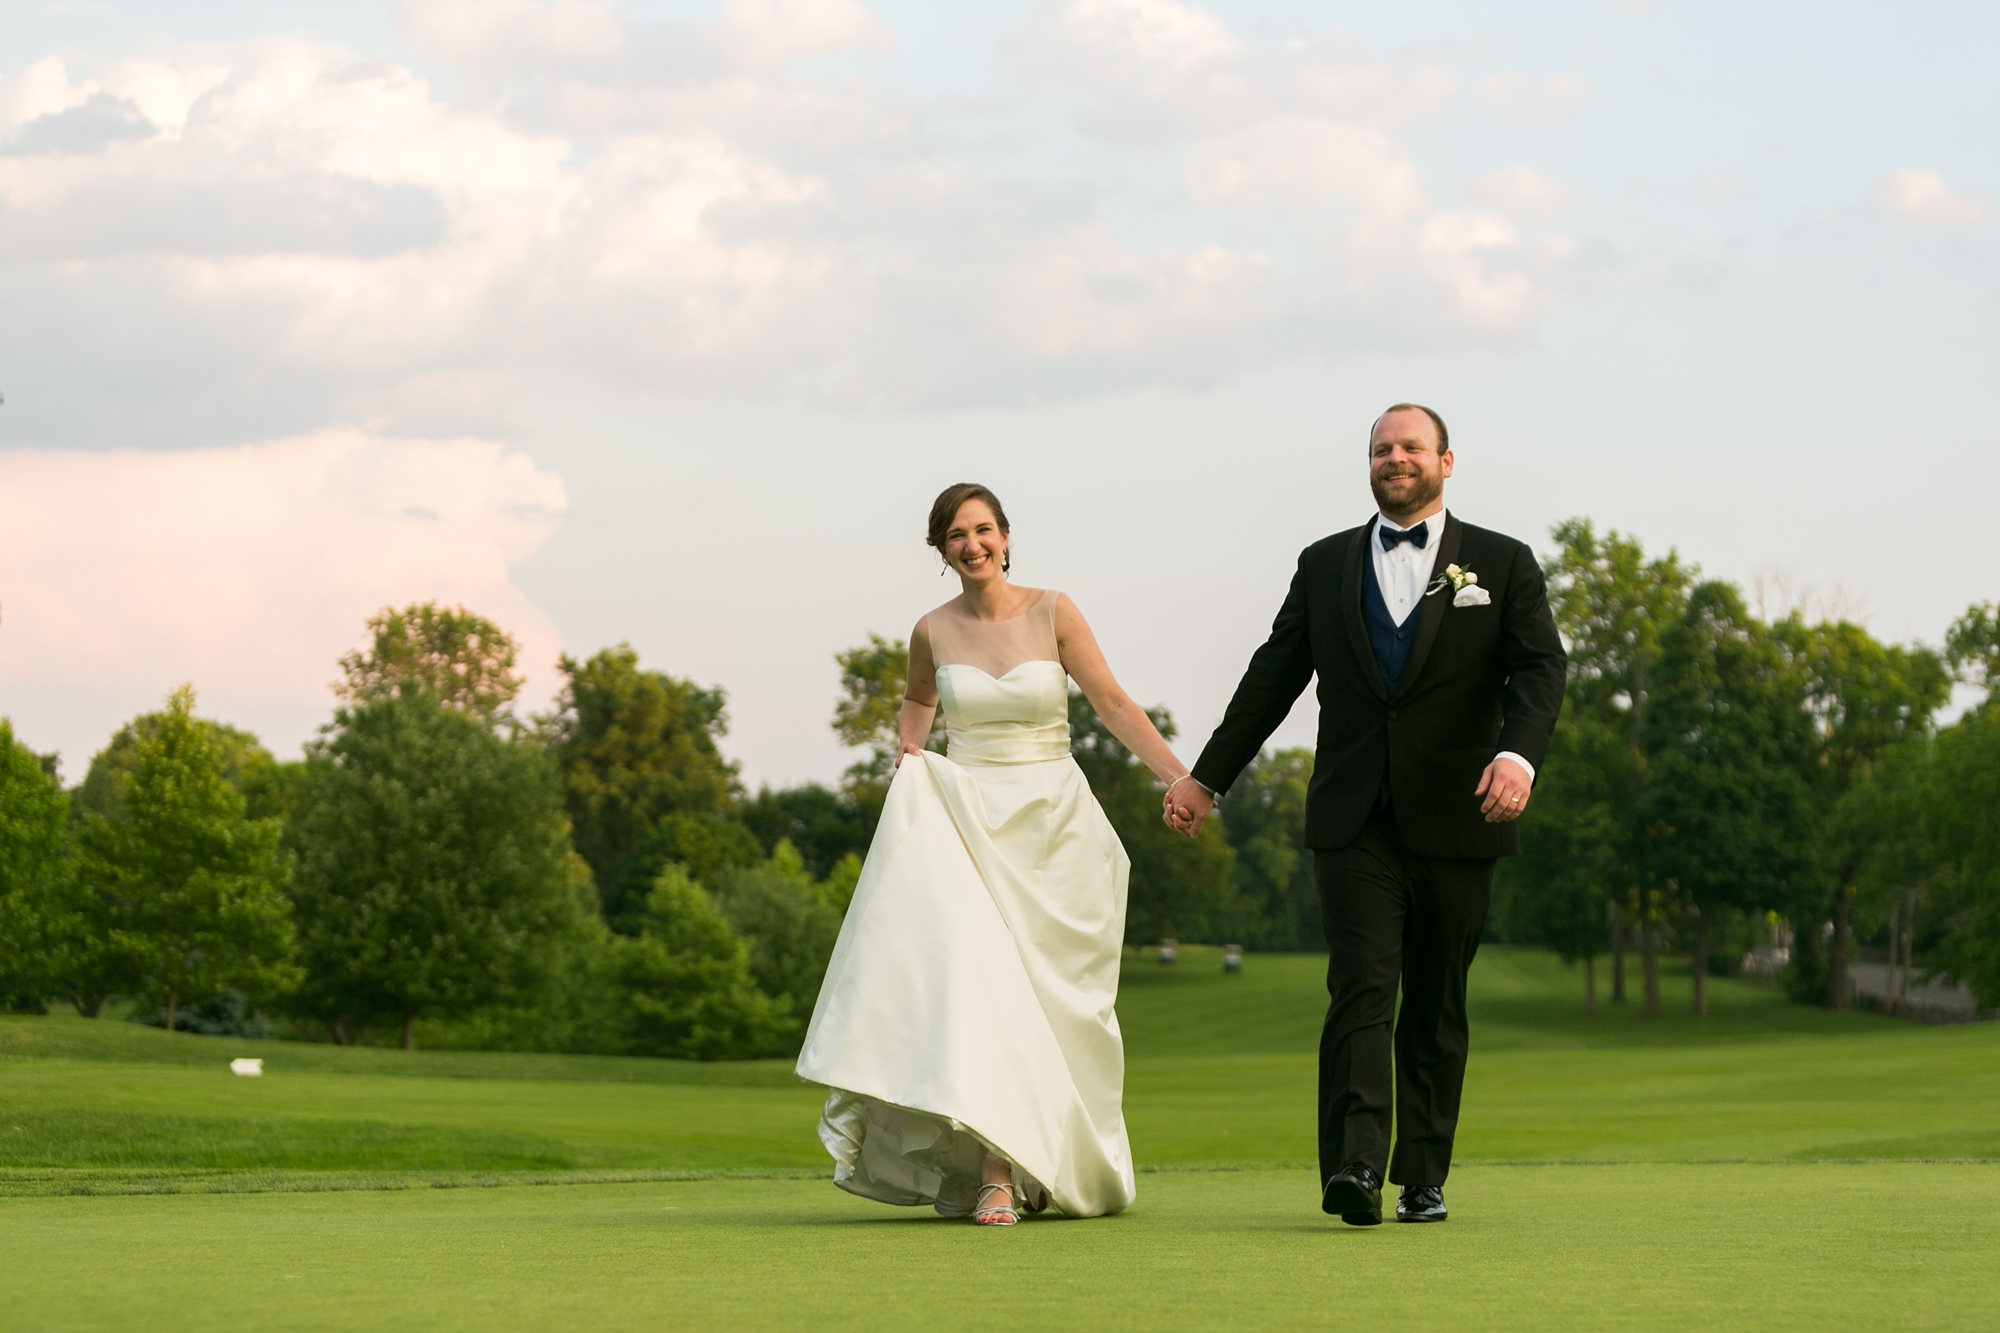 628Allegra_Anderson_CT_Wedding_Photographer_Stamford_Sterling_Farms_Golf_Club_2016